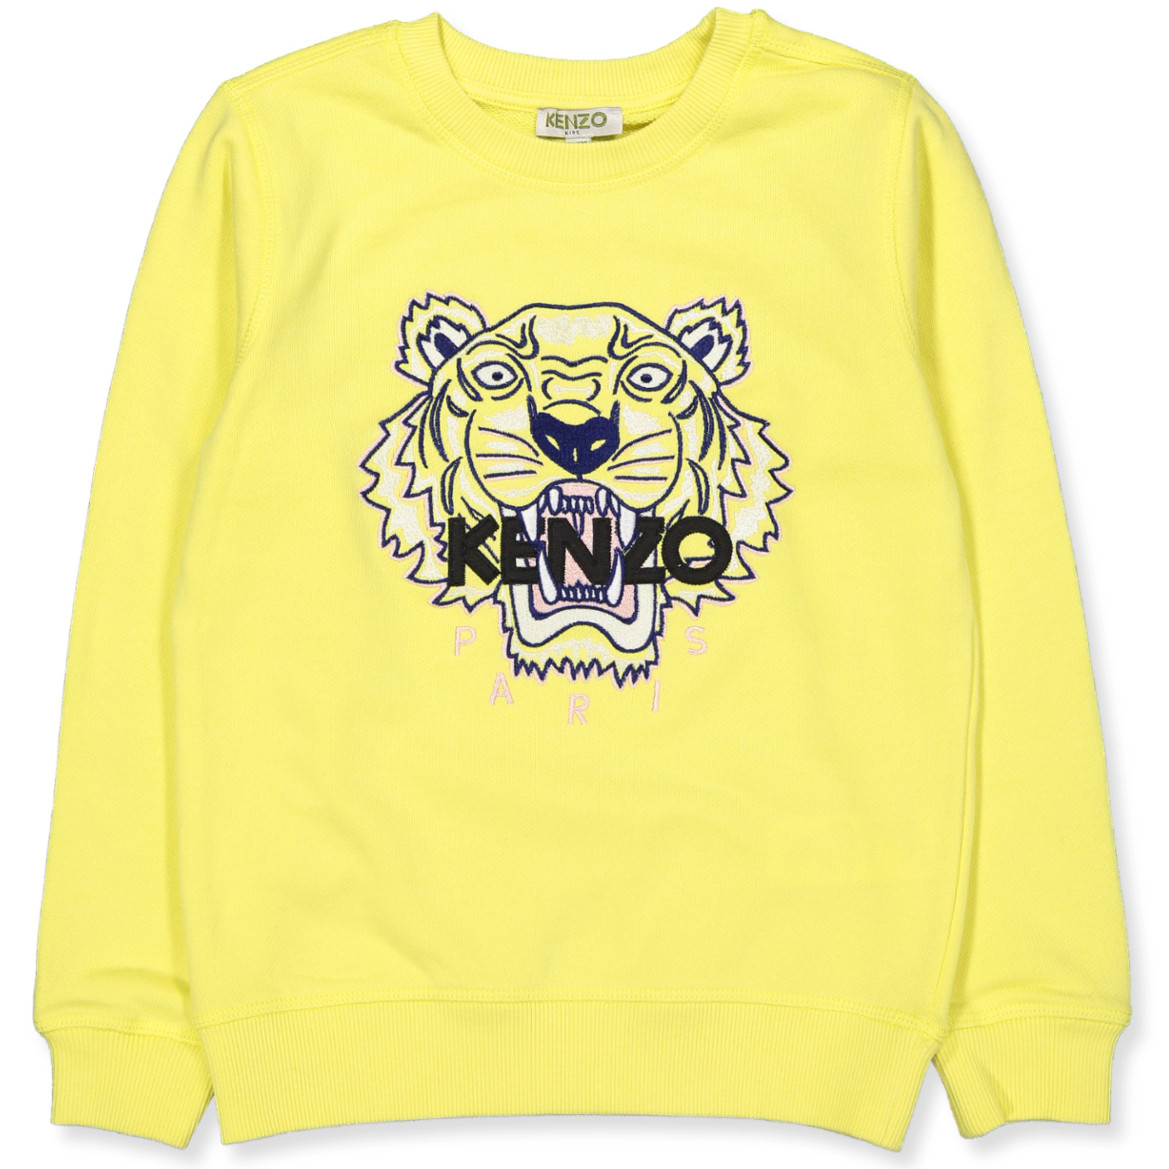 Kenzo Kids - Tiger sweatshirt - YELLOW - Yellow